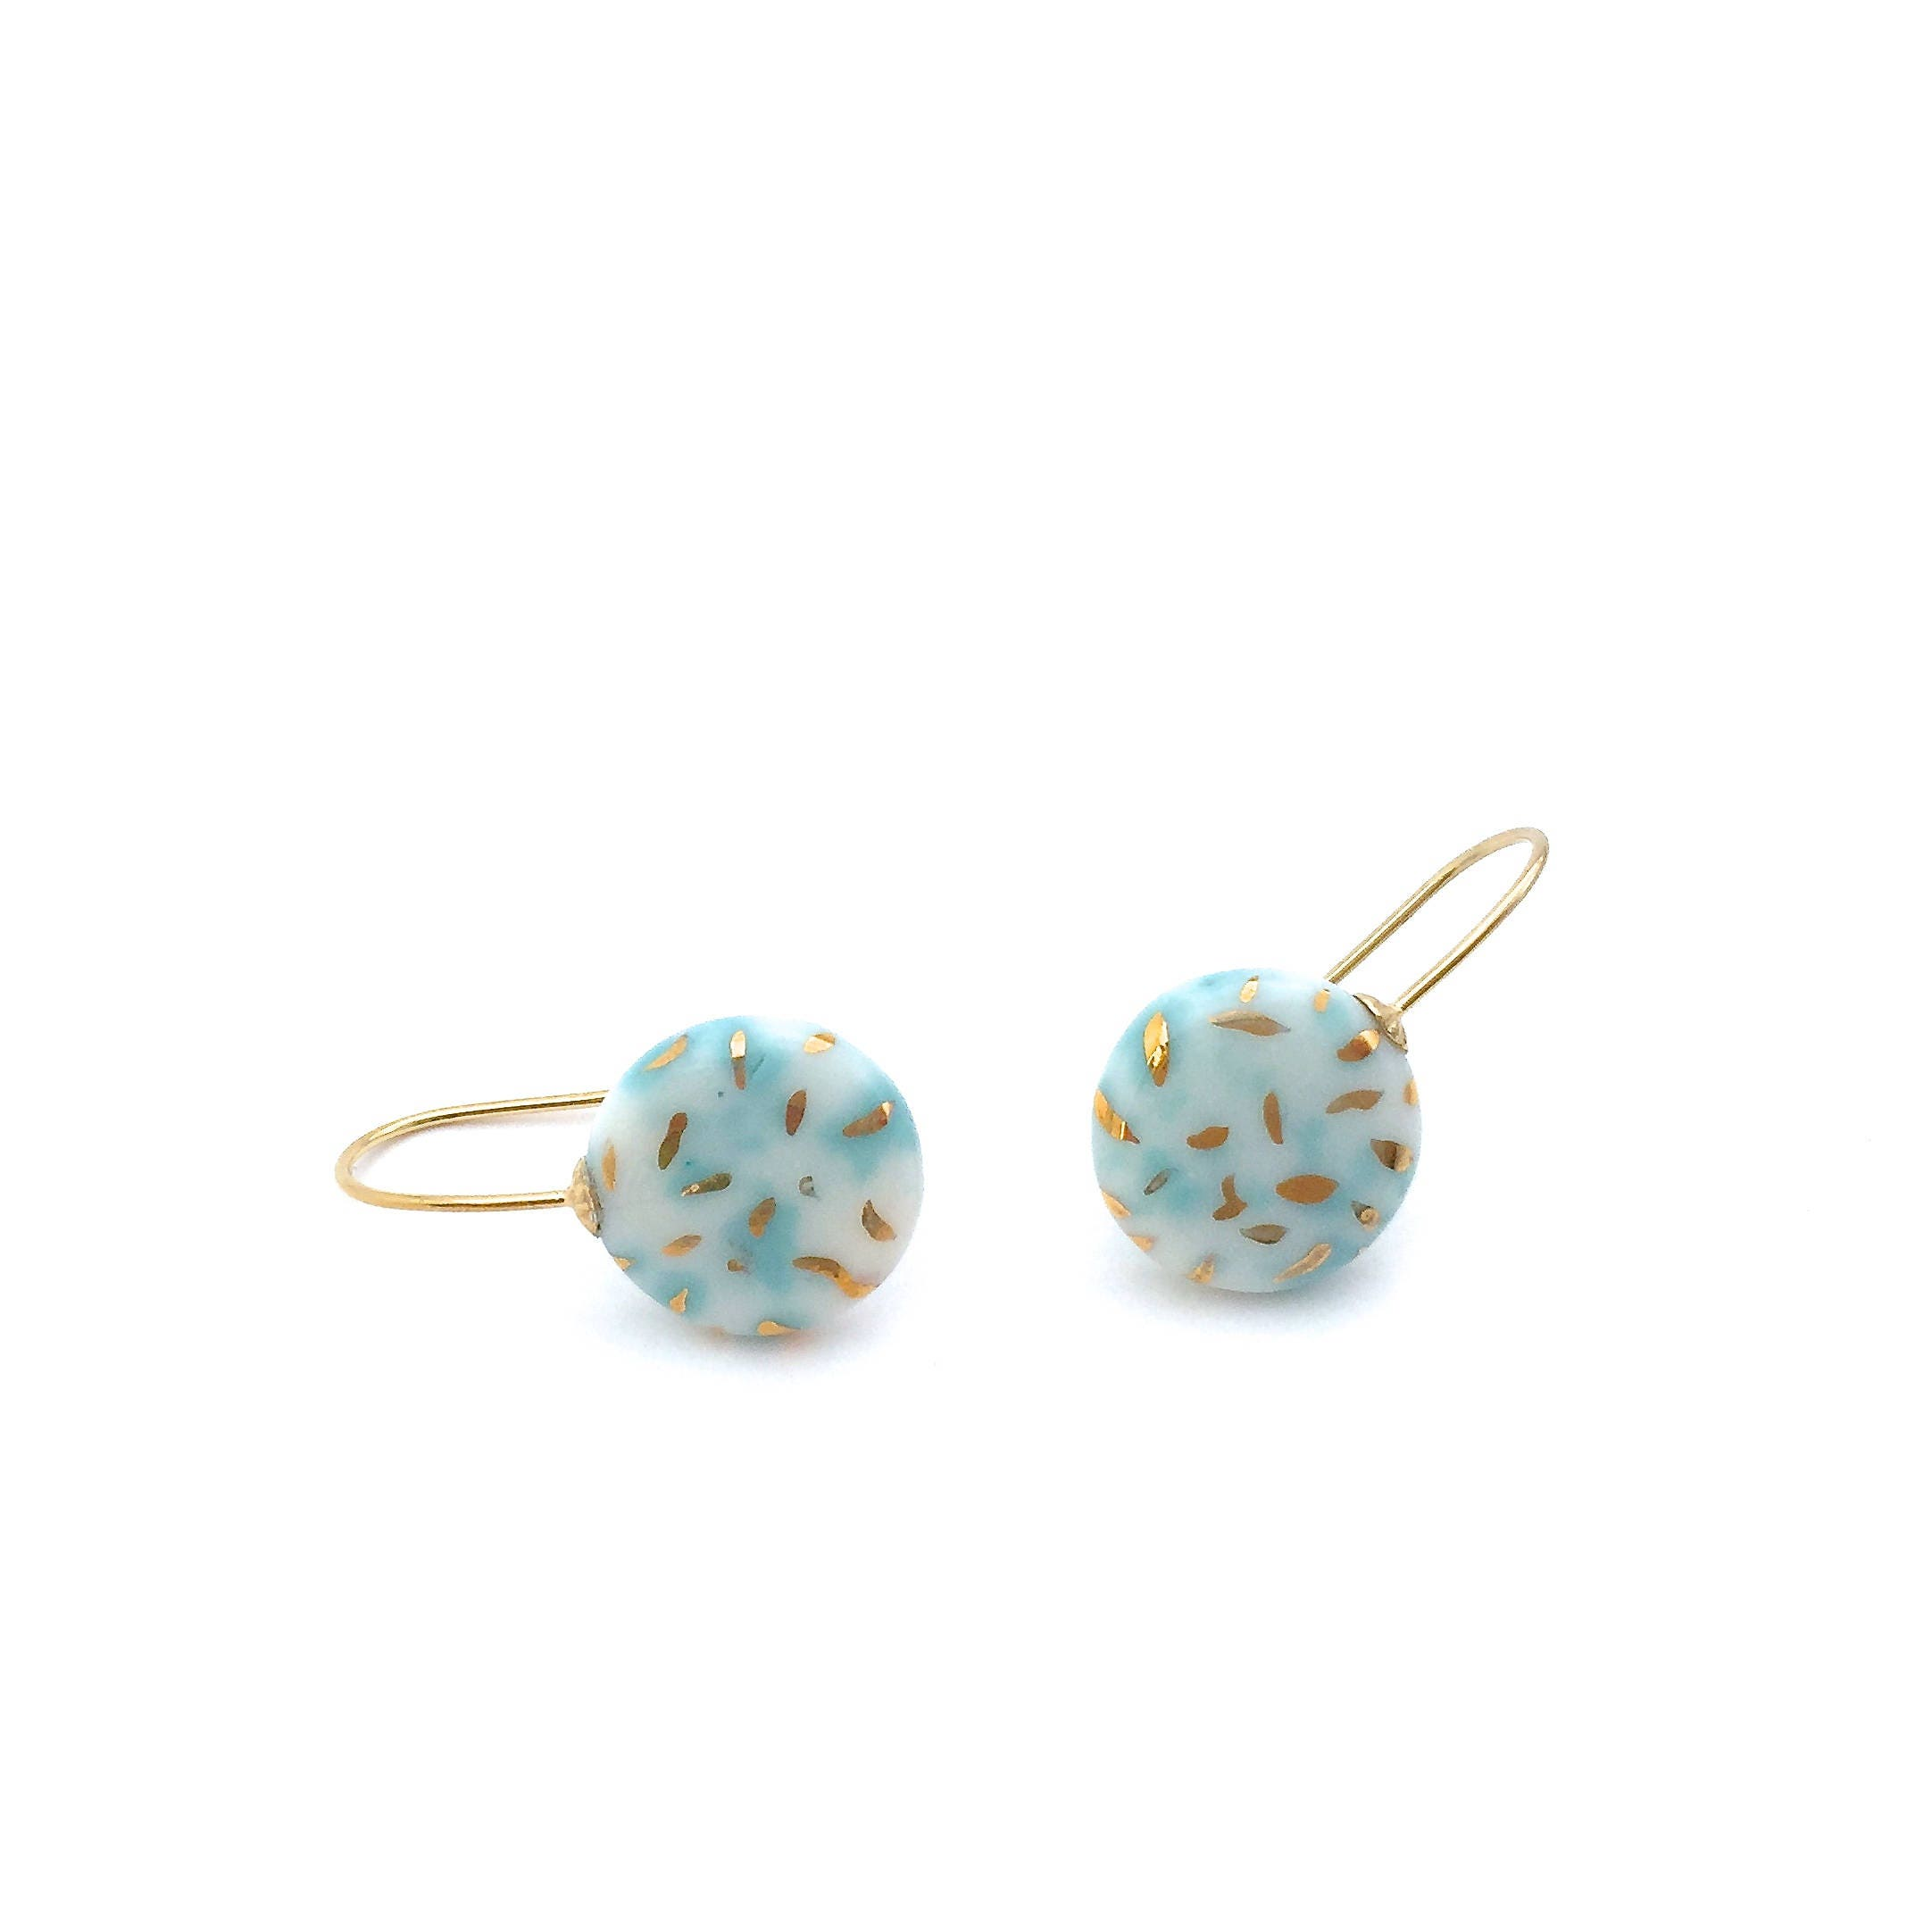 Mint Coloured Clay Ceramic Earrings 18k Solid Gold Porcelain Jewelry